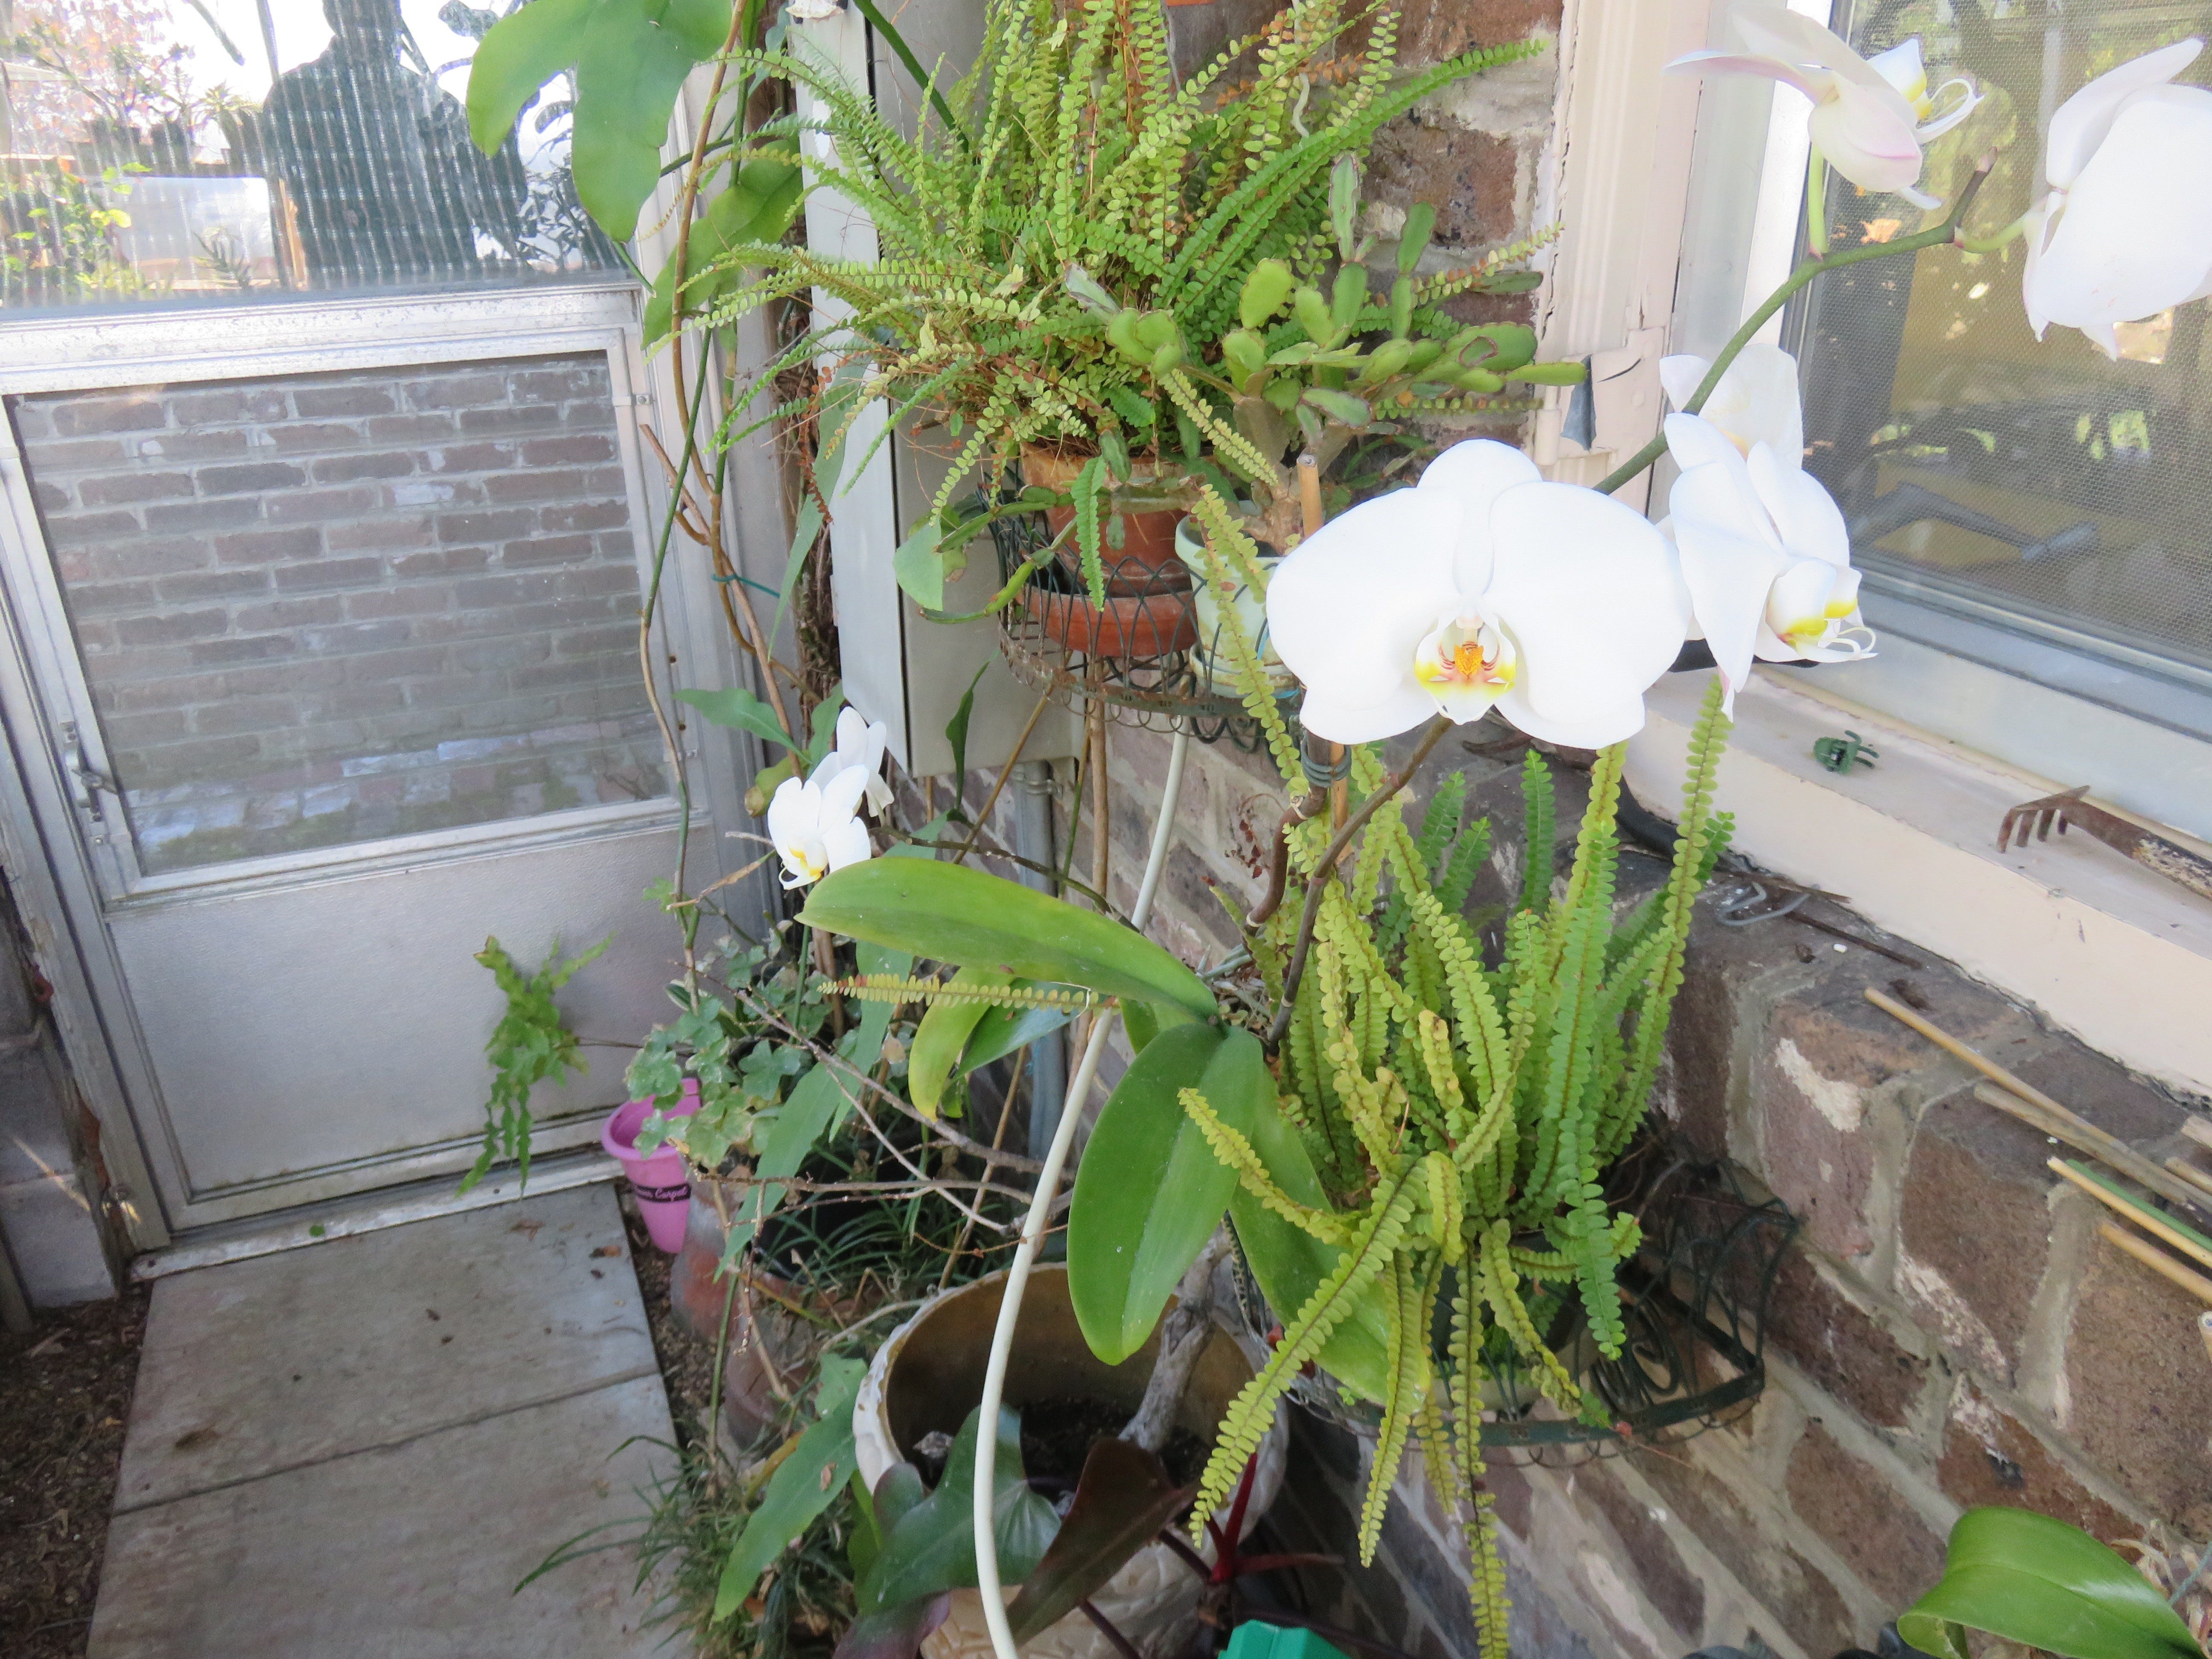 Orchid blooms in small greenhouse adjoining former Cowan Rodgers home.